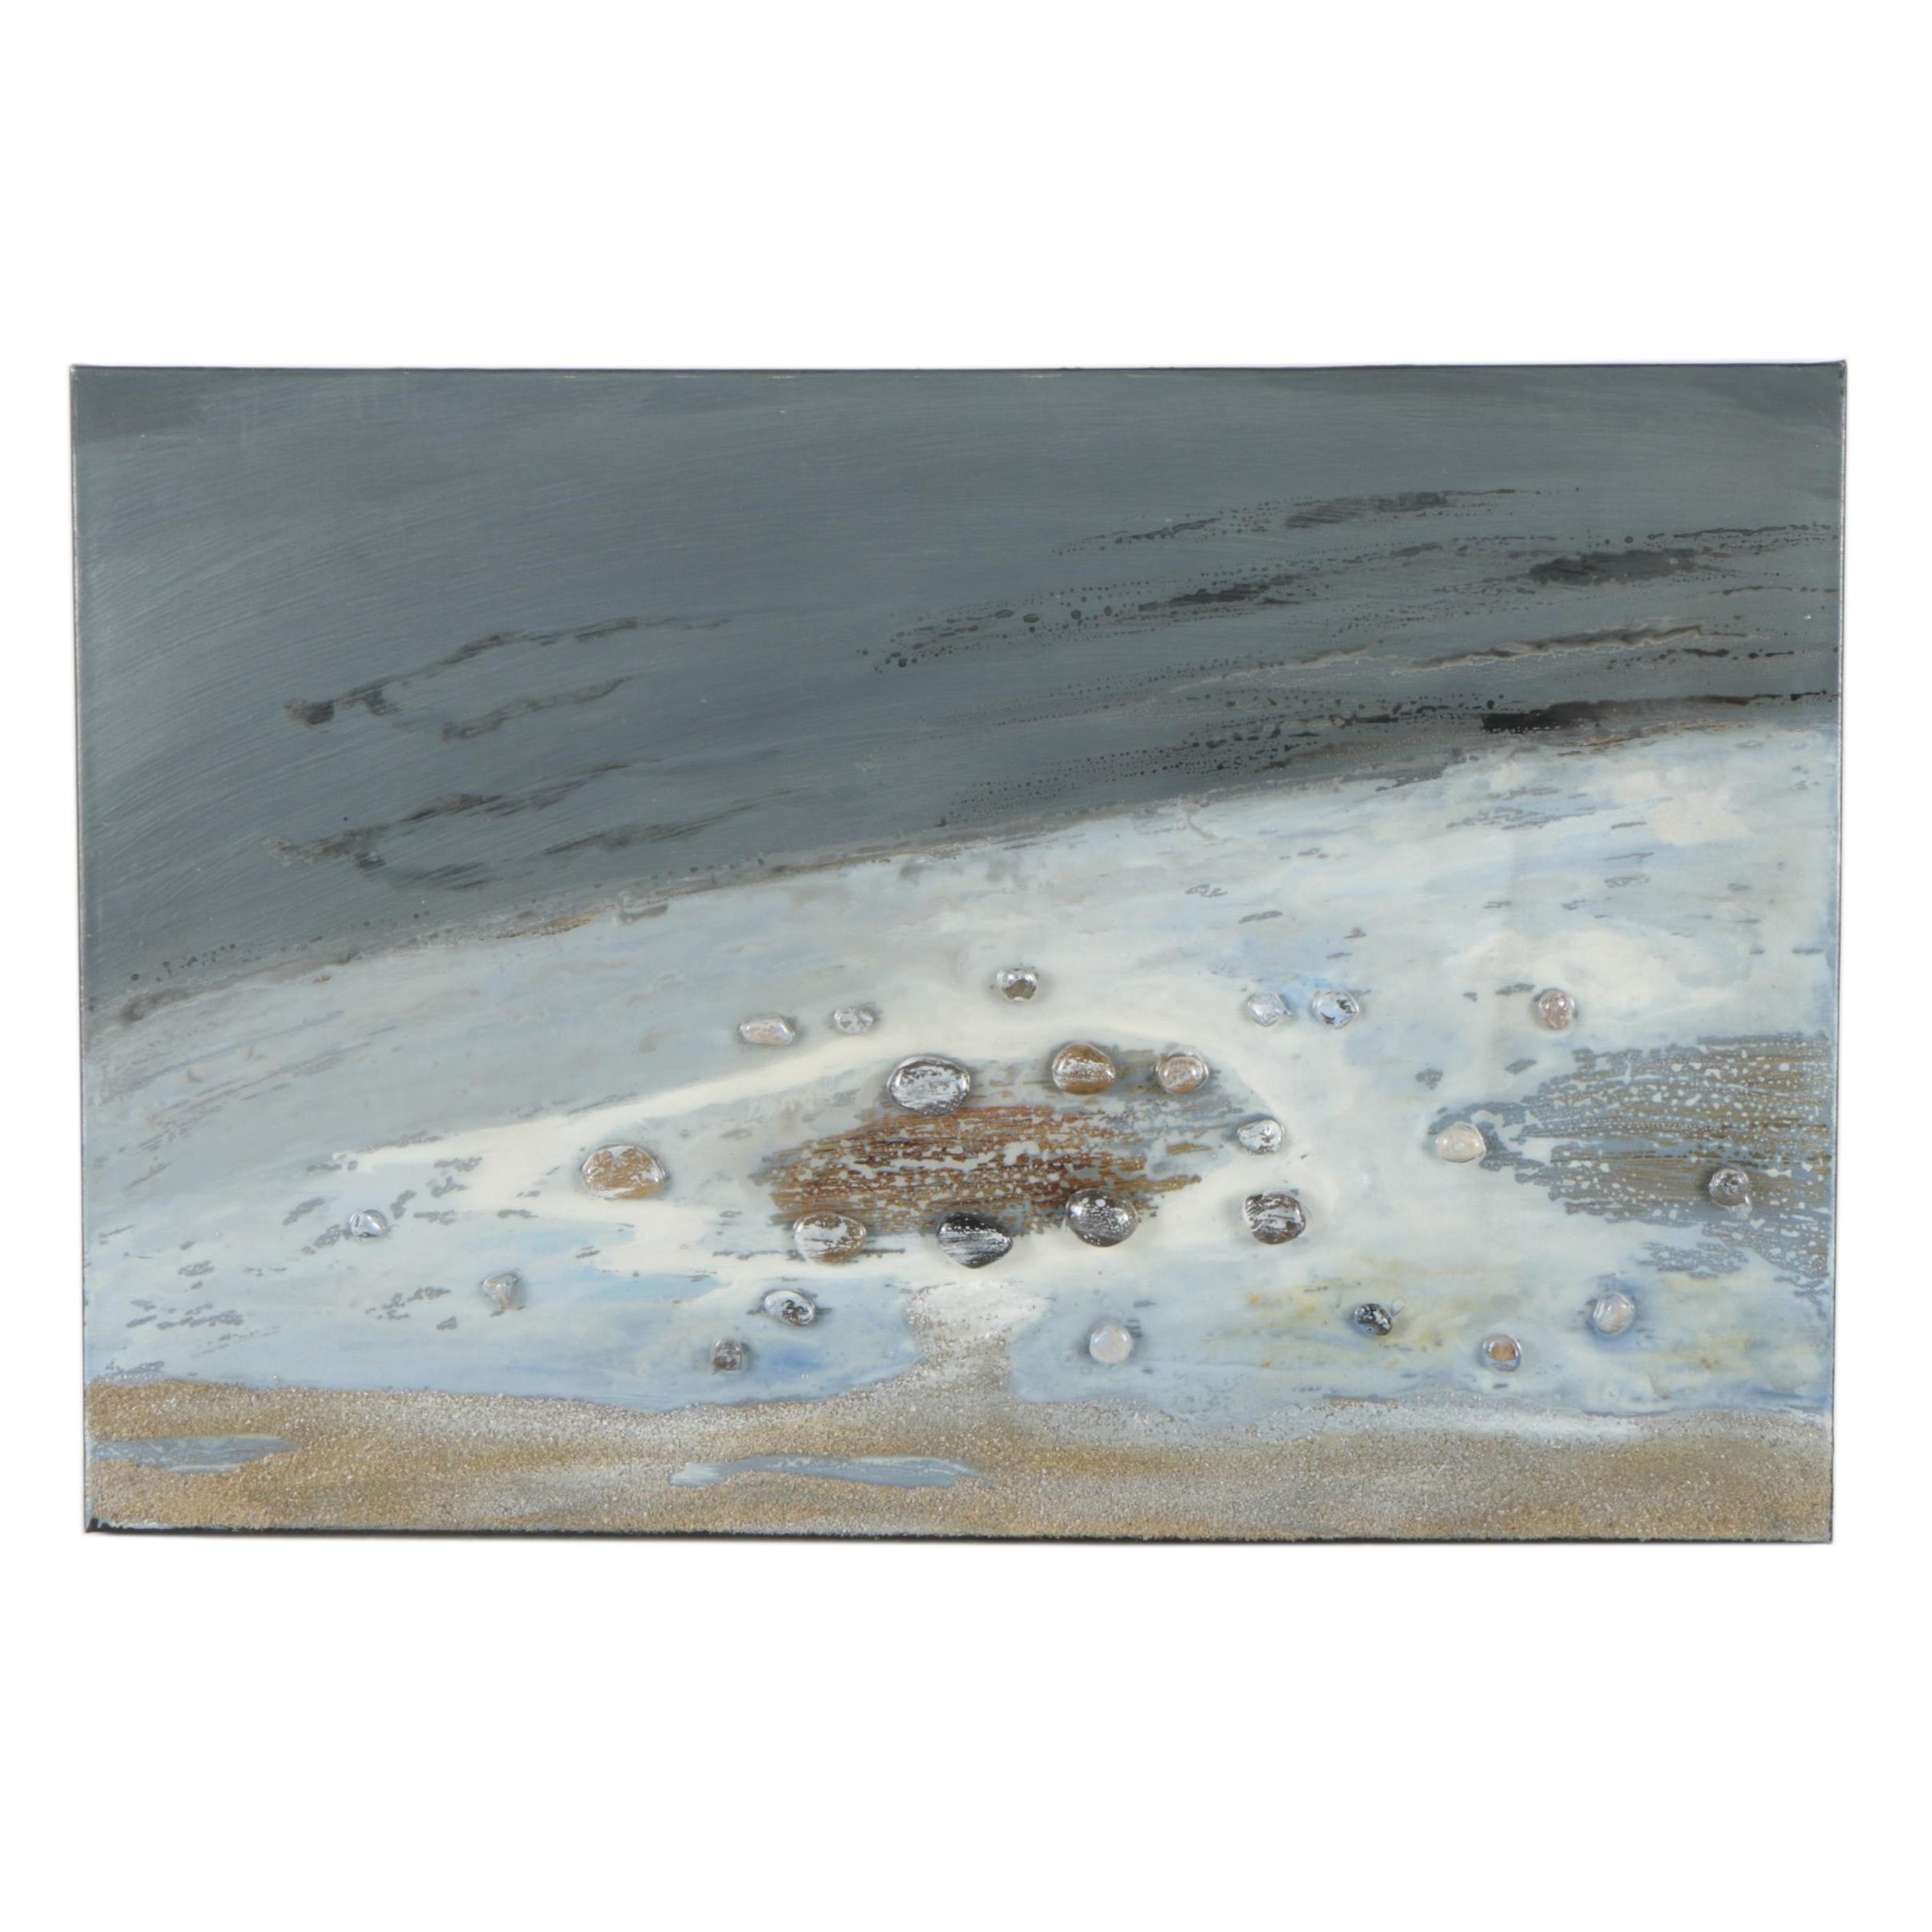 """Mixed Media Painting with Stones and Sand """"Pebbles on the Beach II"""""""